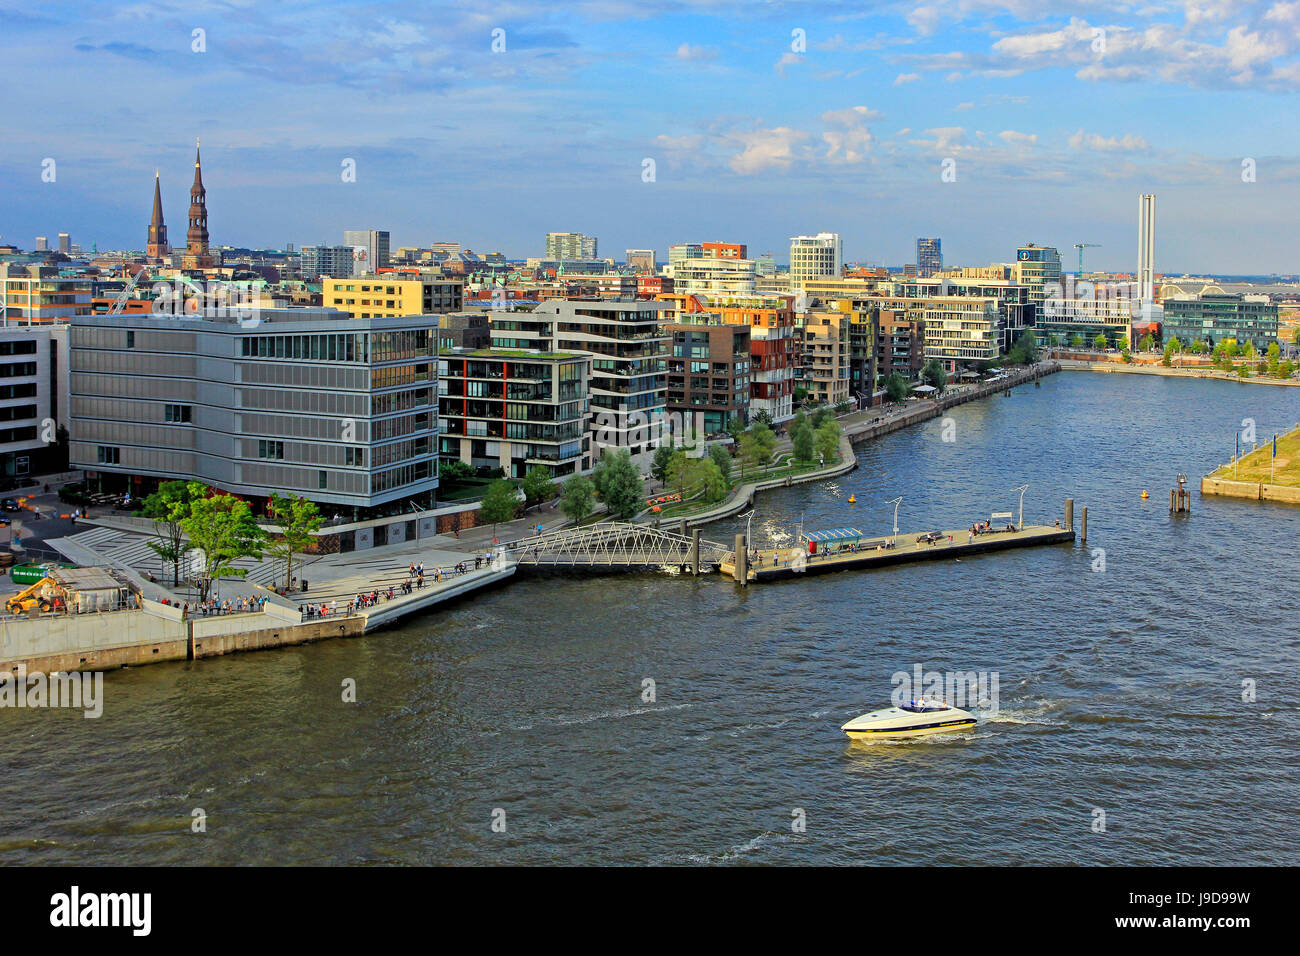 Hafen City, Hamburg, Germany, Europe - Stock Image